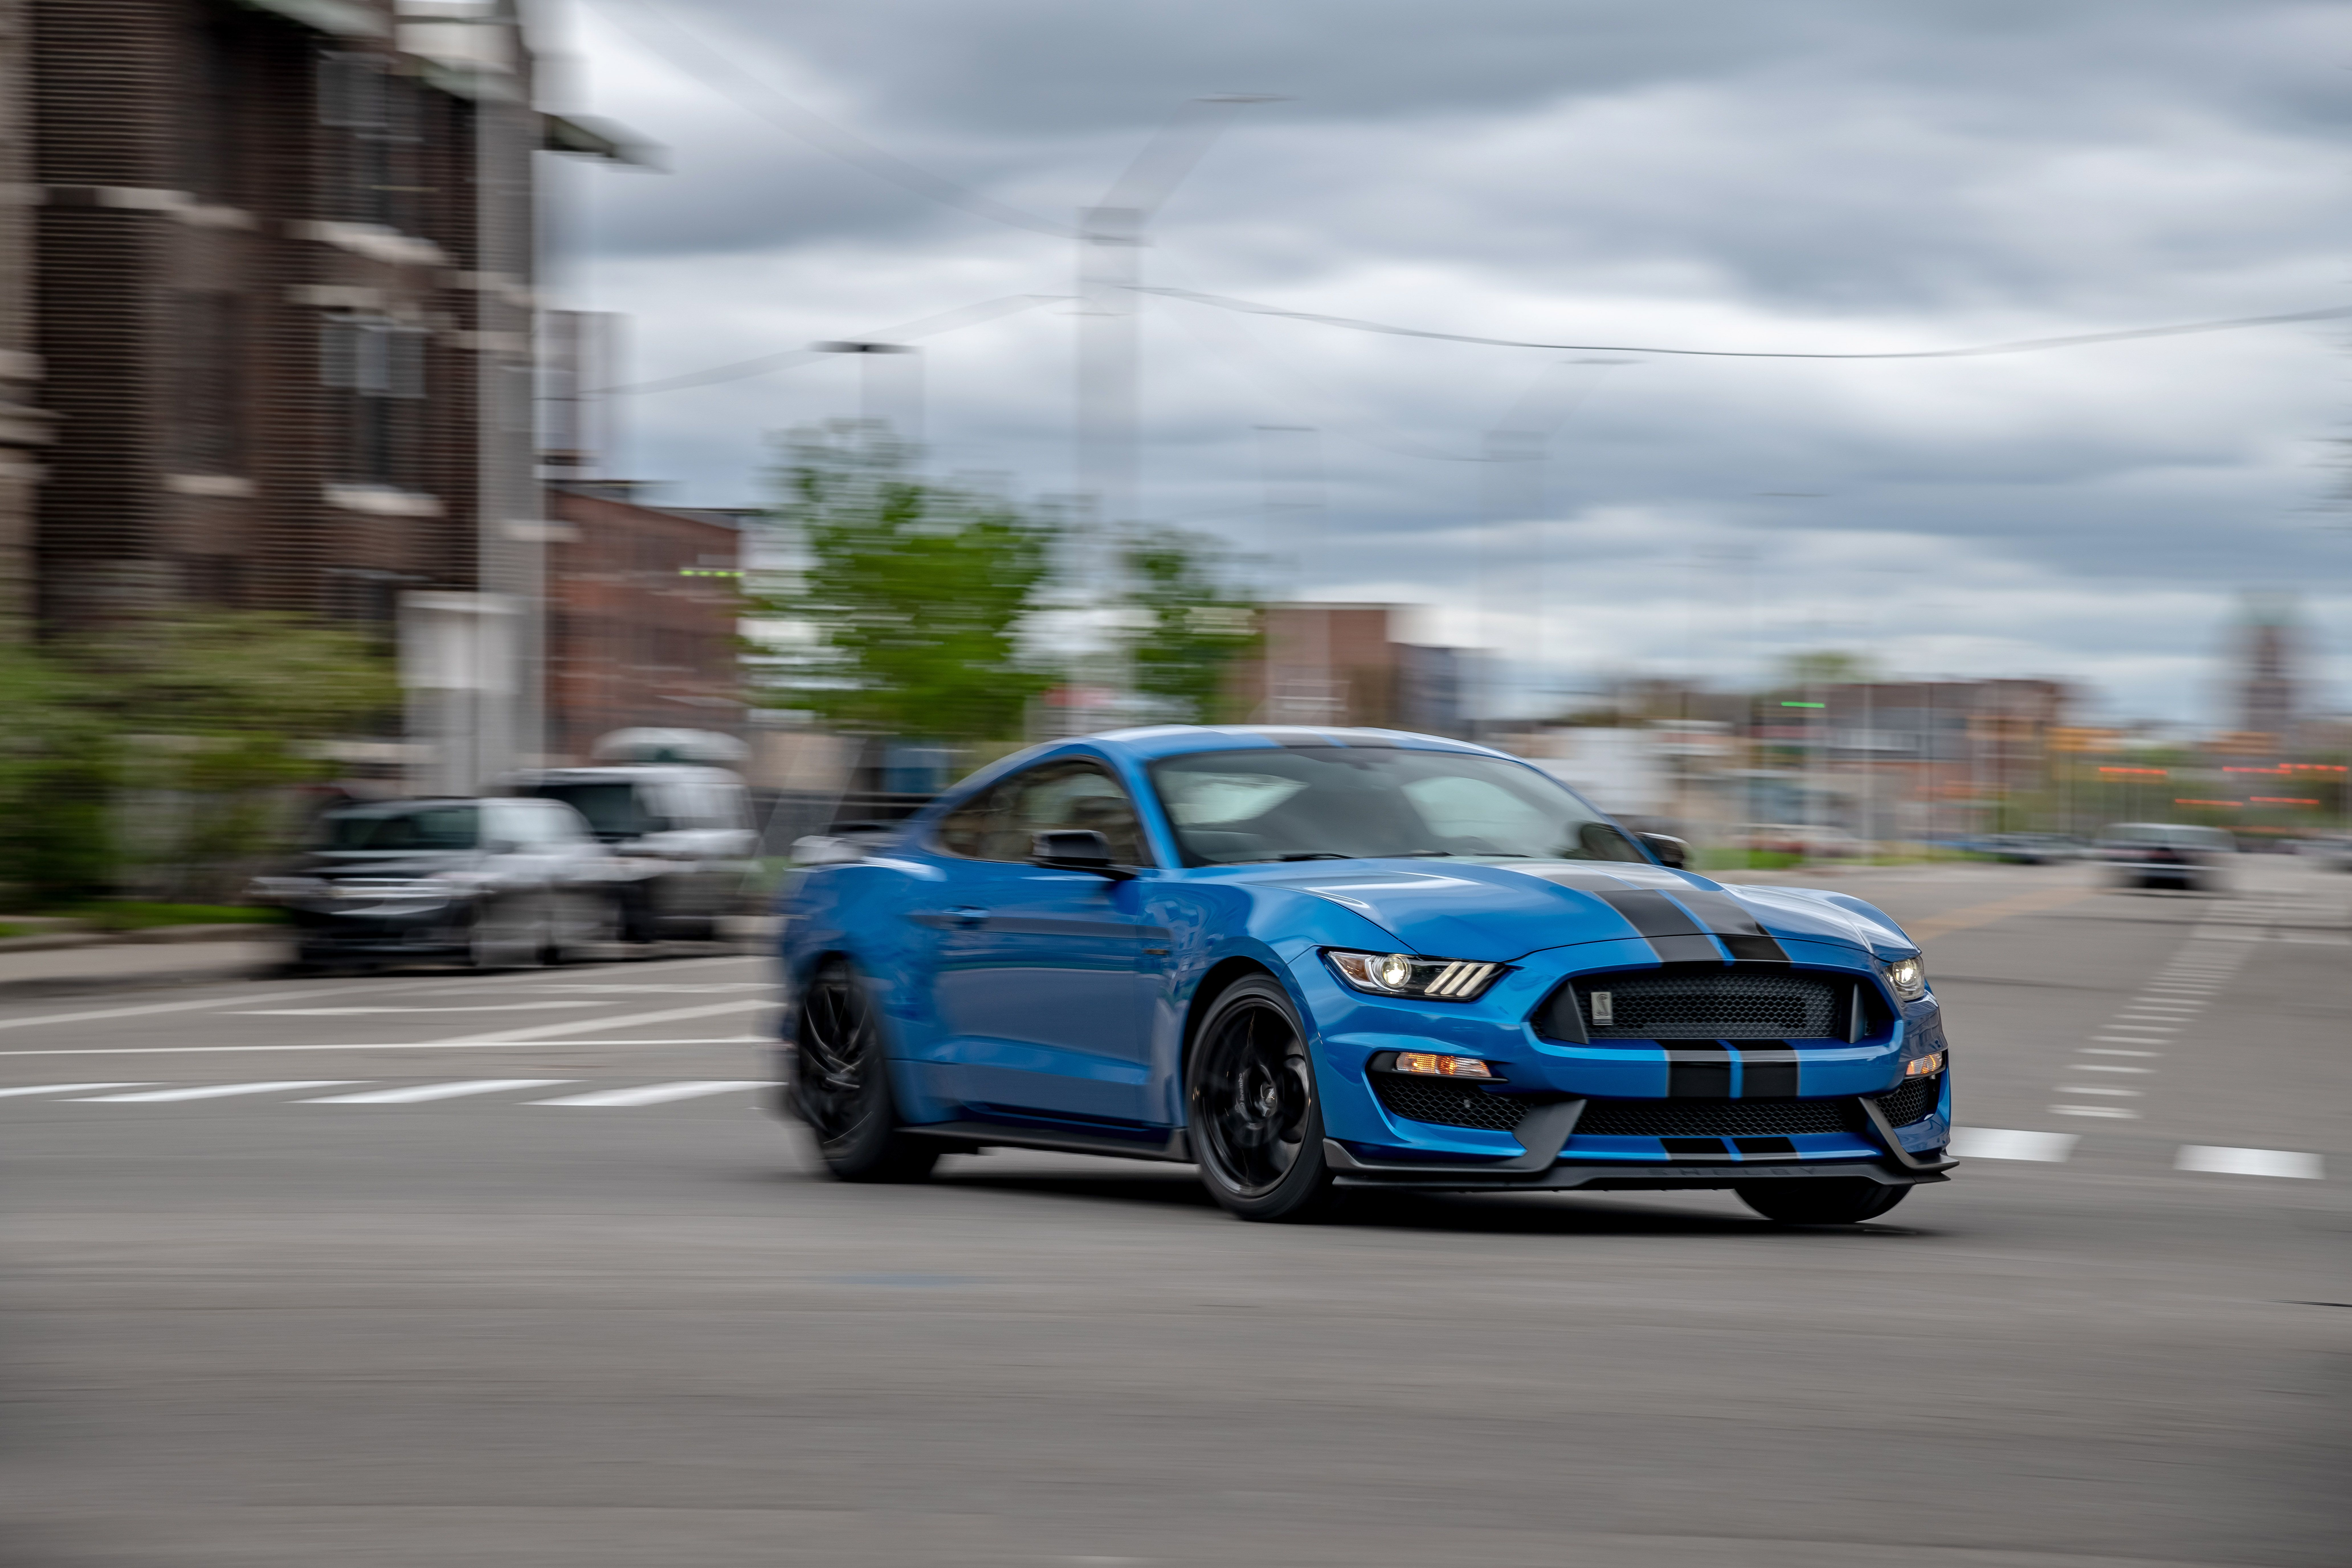 2019 Ford Mustang Shelby GT350 – A Sharper Track Pony